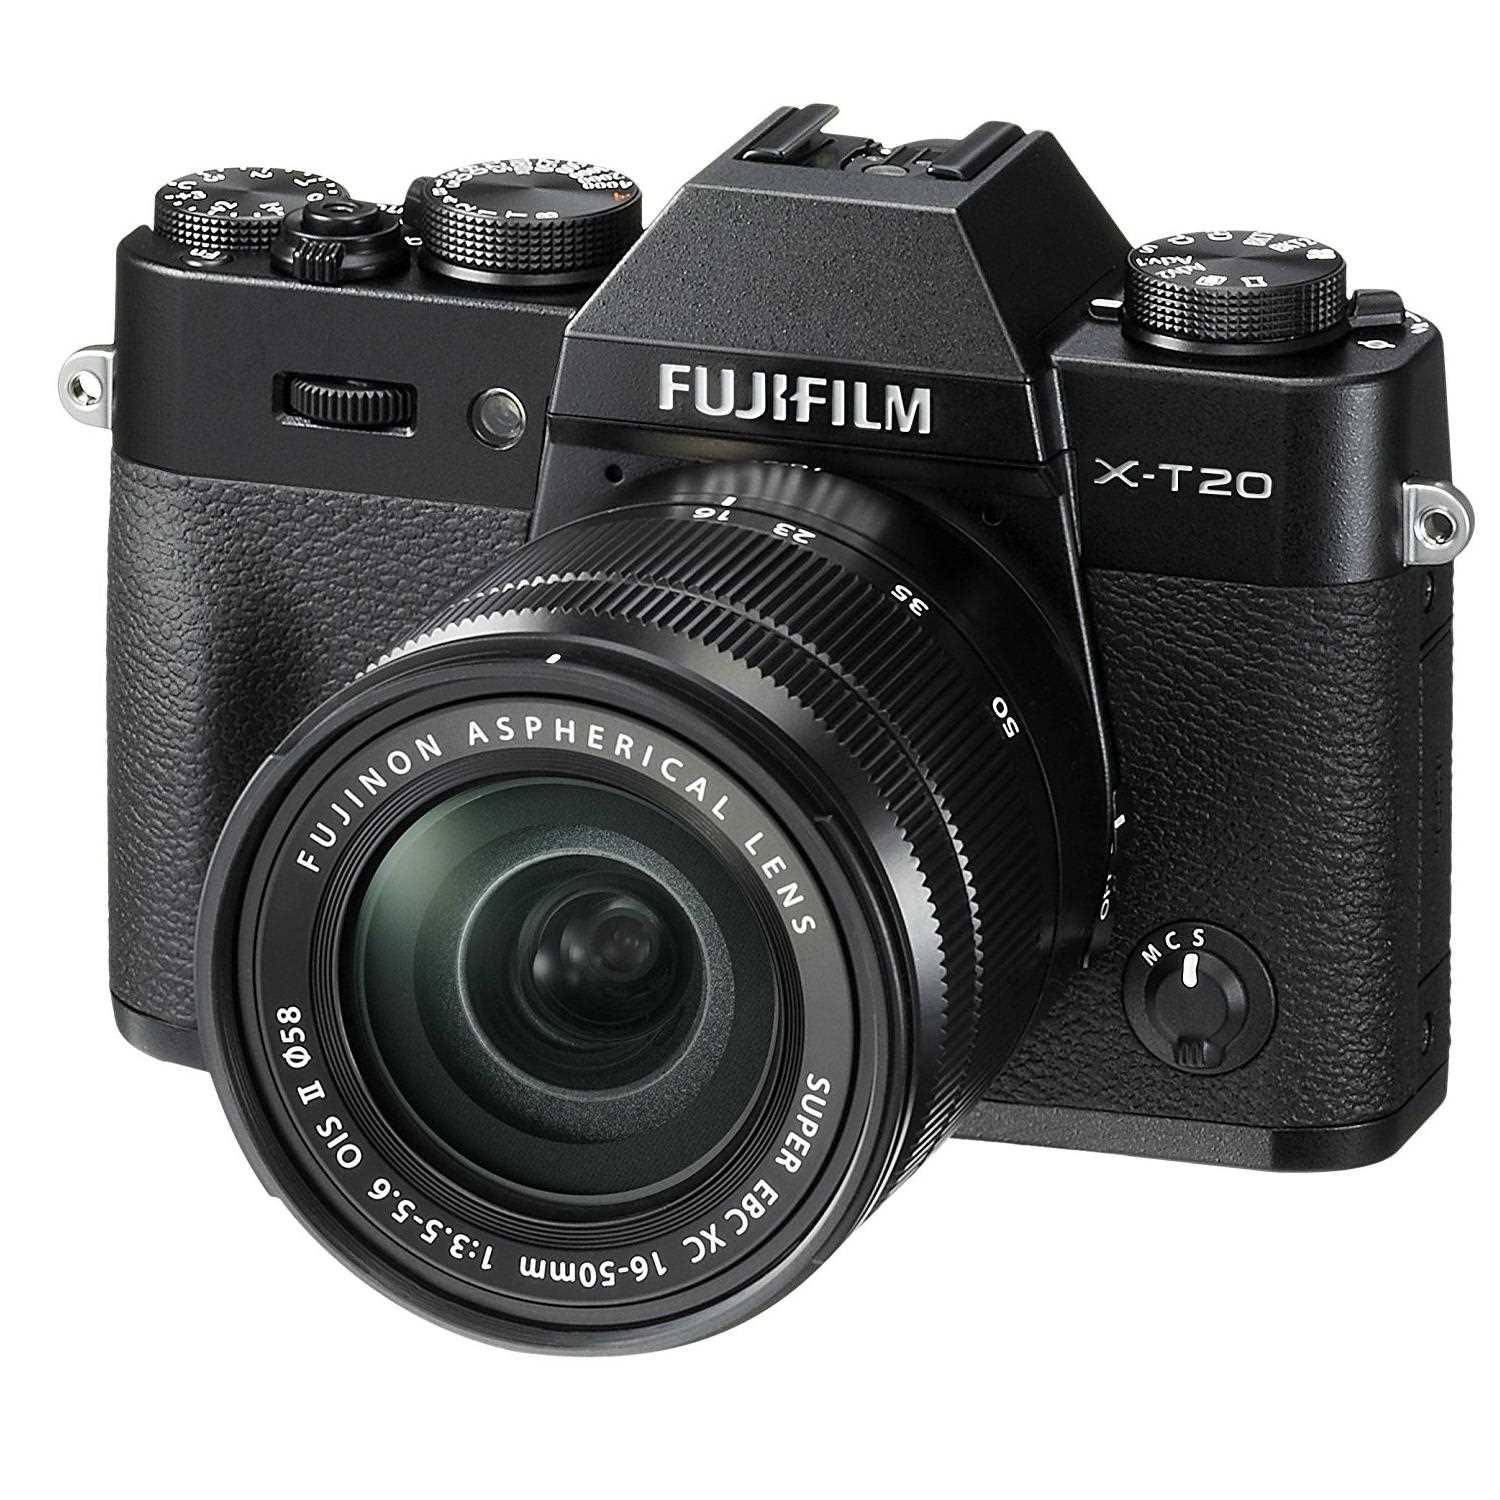 Fujifilm X-T20 Camera with 16-50 mm Lens